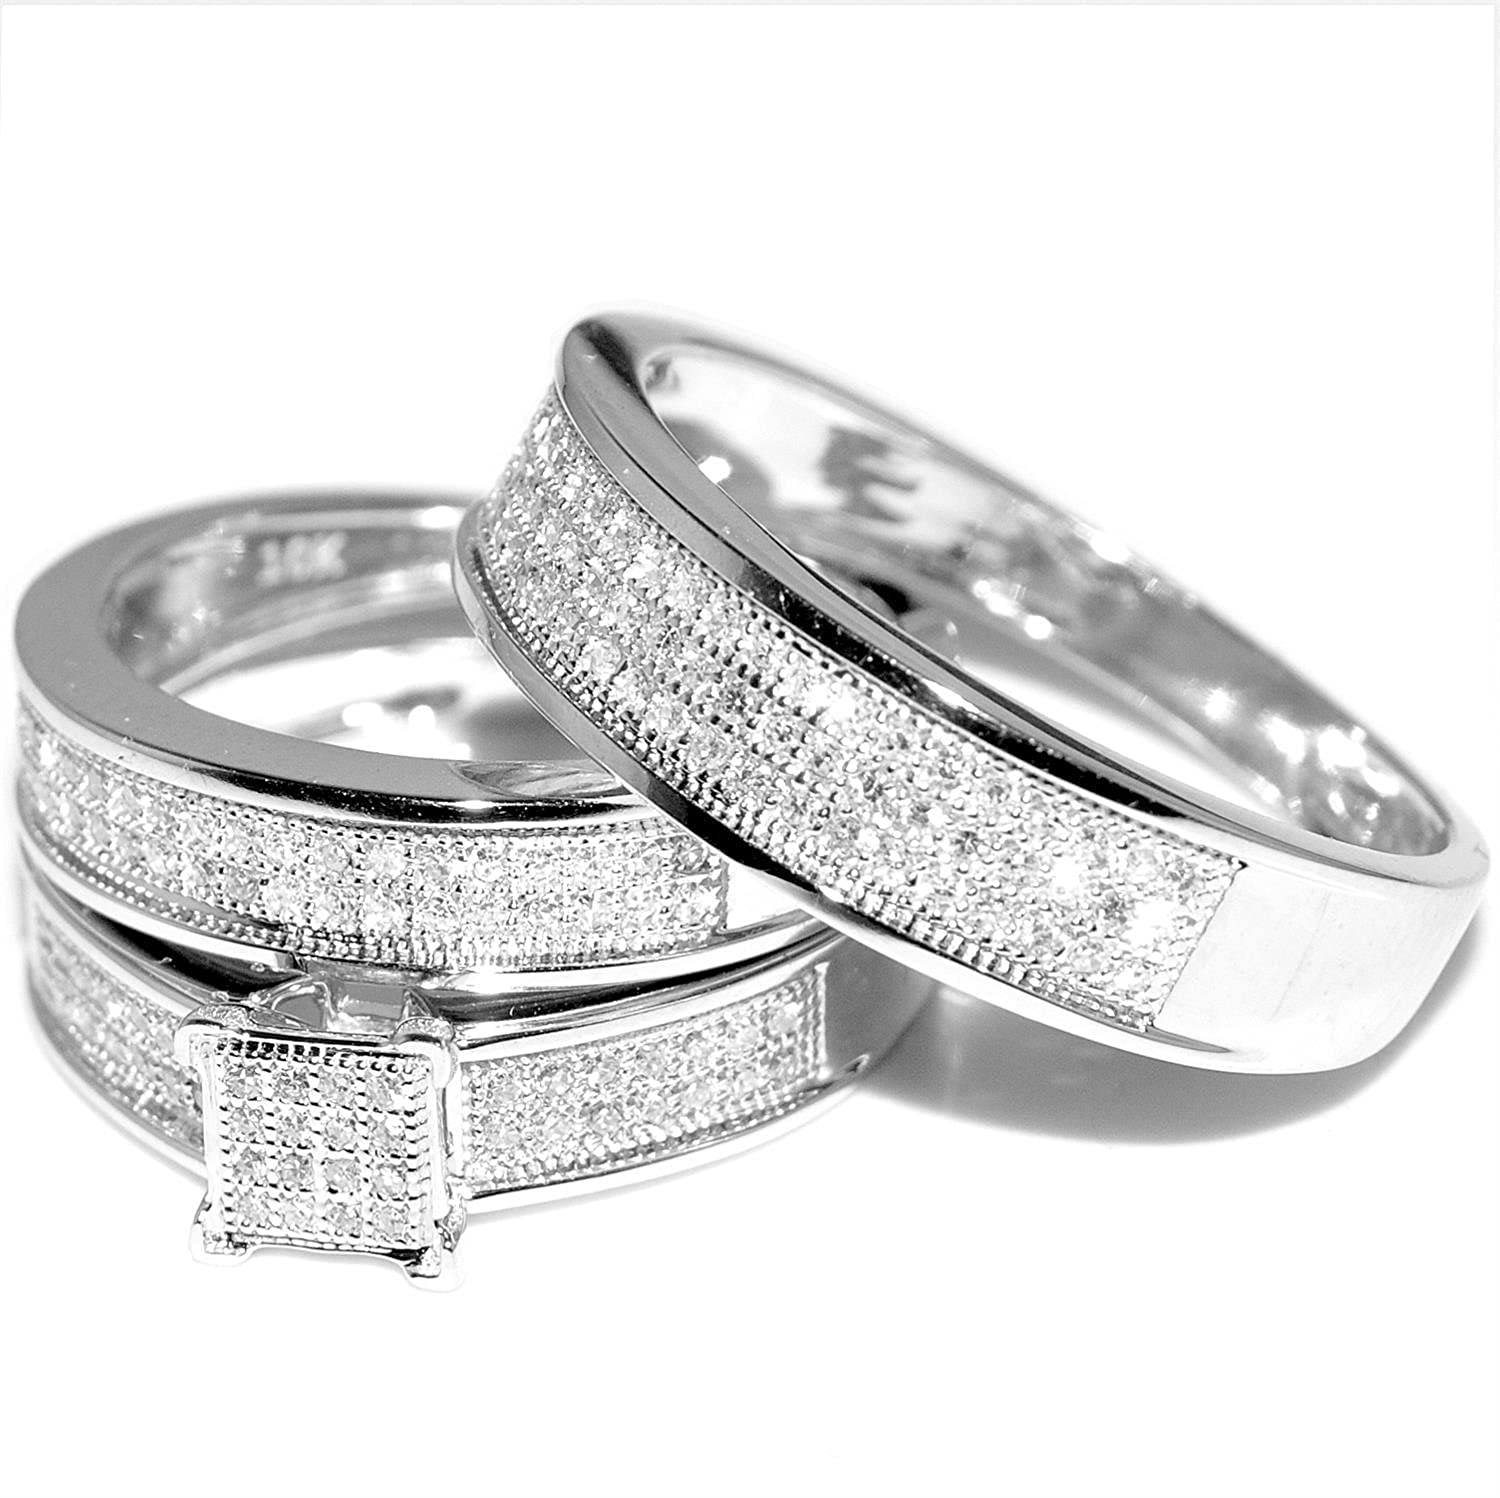 twin wedding tungsten line band s and with sol bands set platinum men grey of ring for products silicone black sets silver